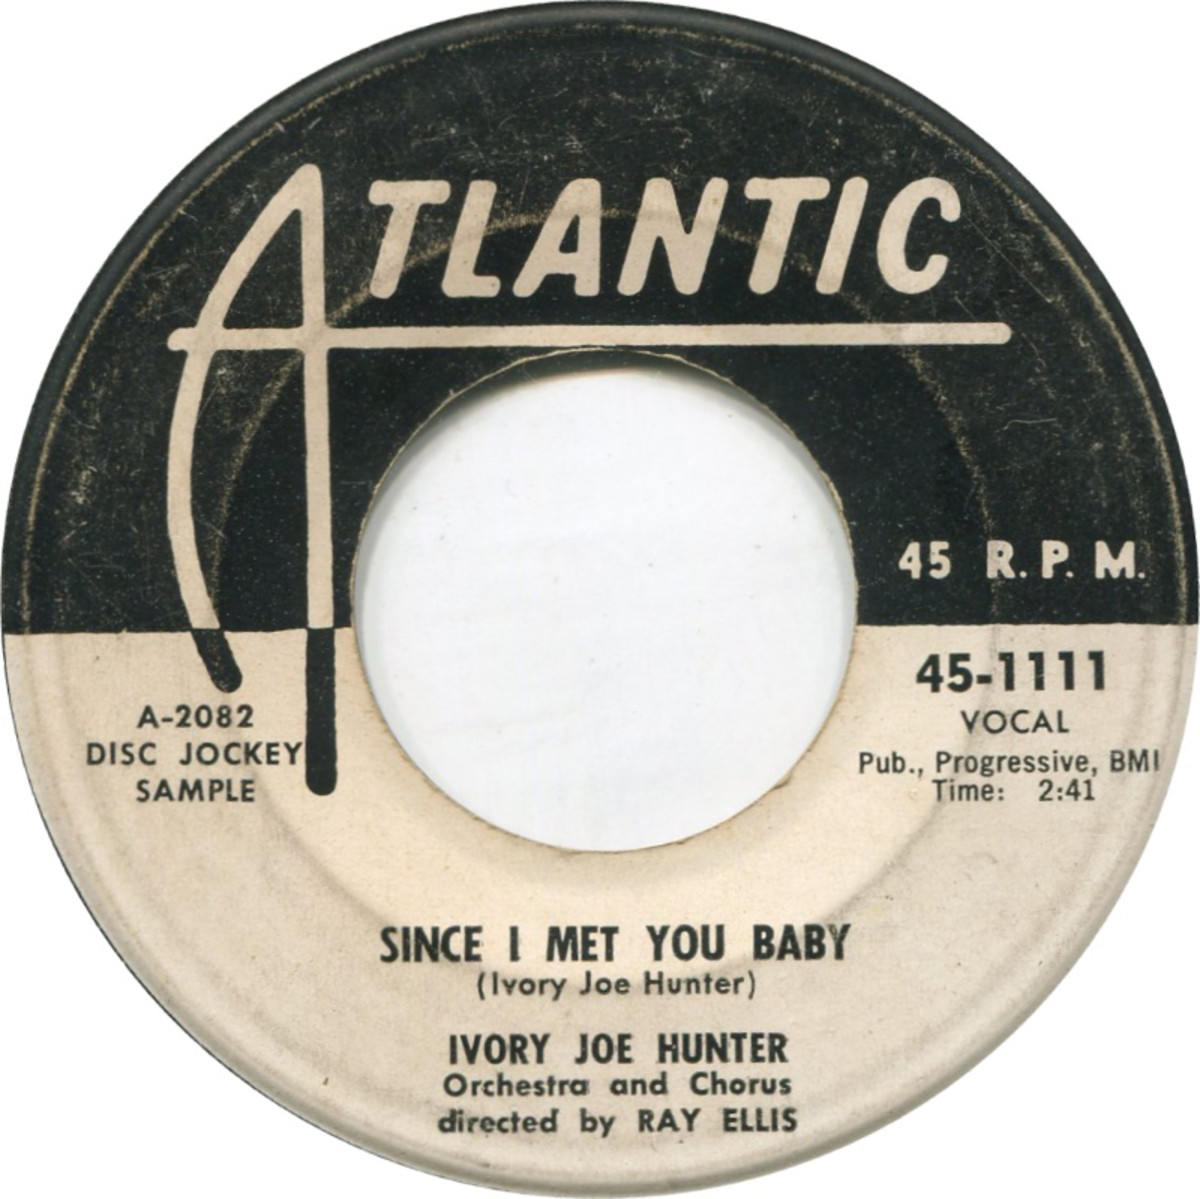 "Ivory Joe Hunter's ""Since I Met You Baby"" (Atlantic 45-1111) peaked at No. 12 on the Billboard Hot 100 in 1956."